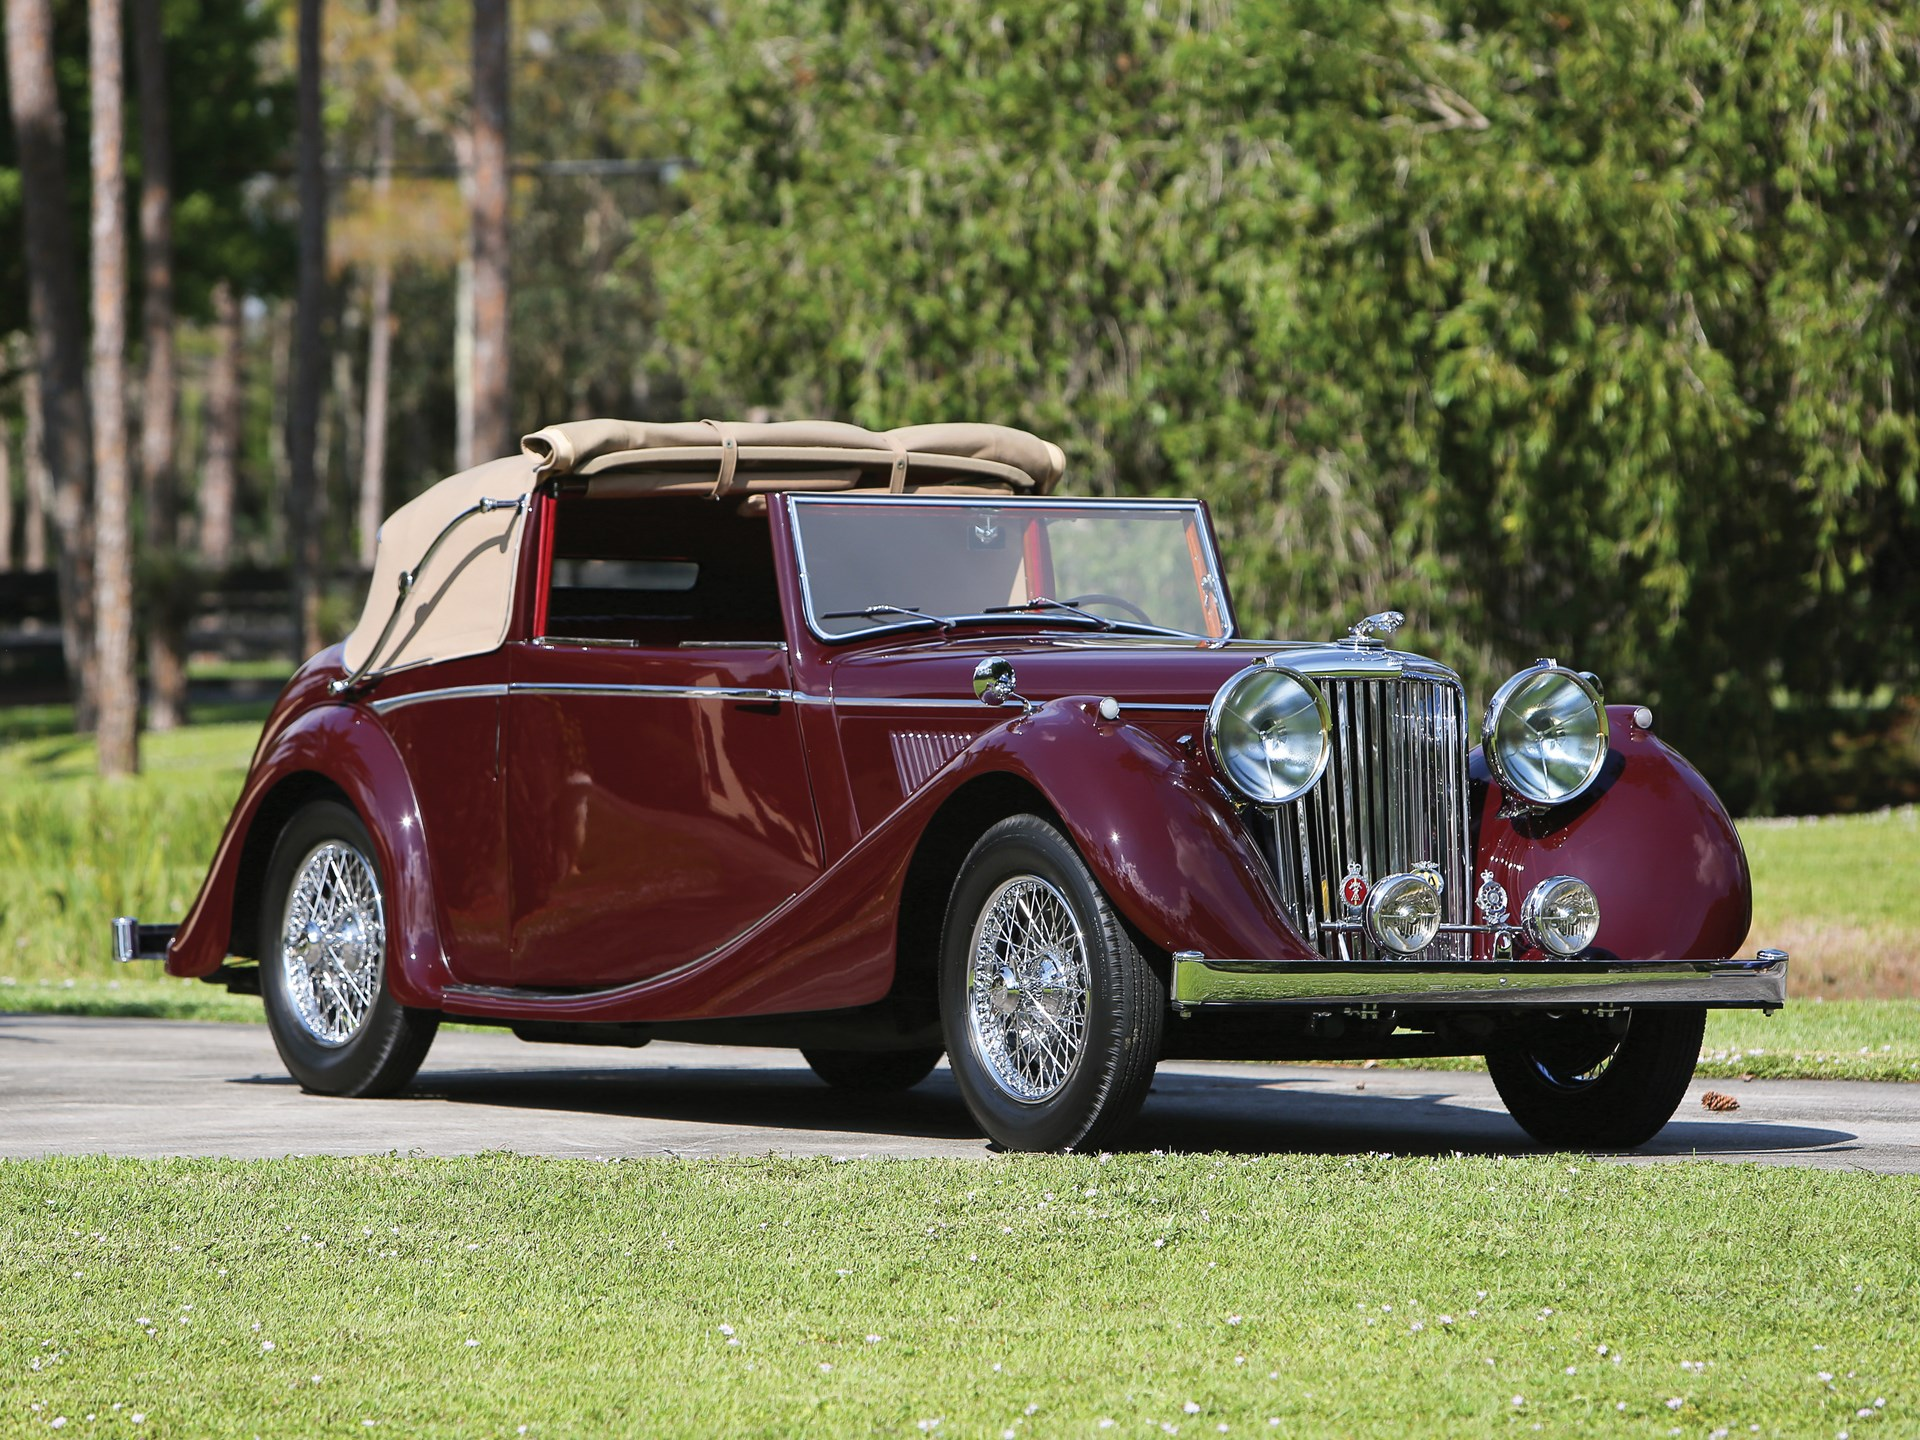 1948 Jaguar Mark IV 3½-Litre Drophead Coupe